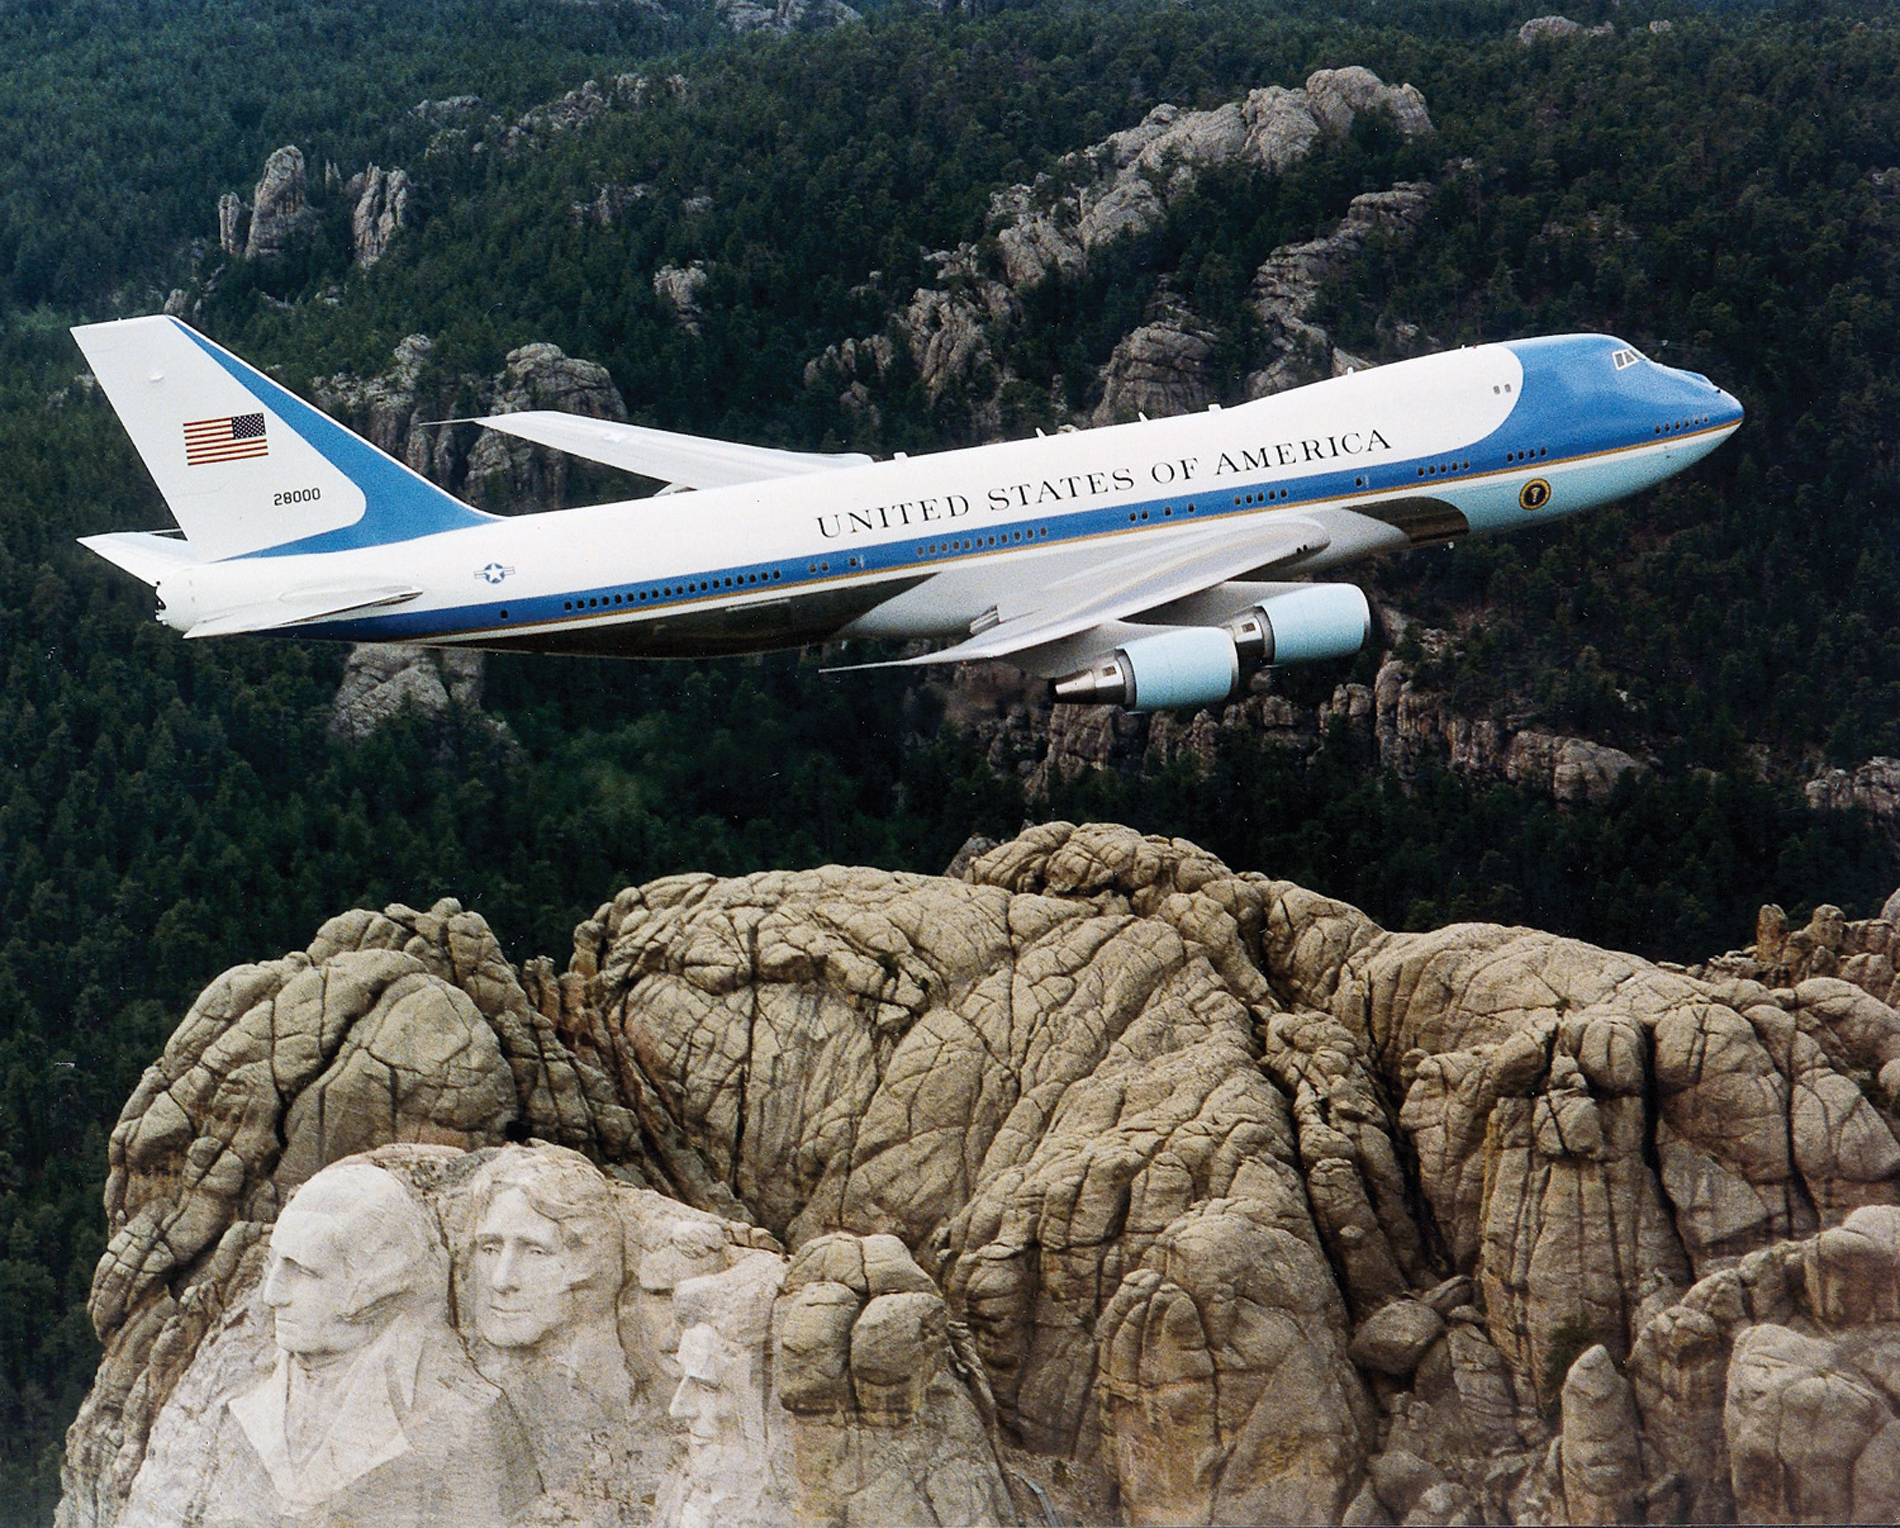 https://upload.wikimedia.org/wikipedia/commons/7/7d/Air_Force_One_over_Mt._Rushmore.jpg